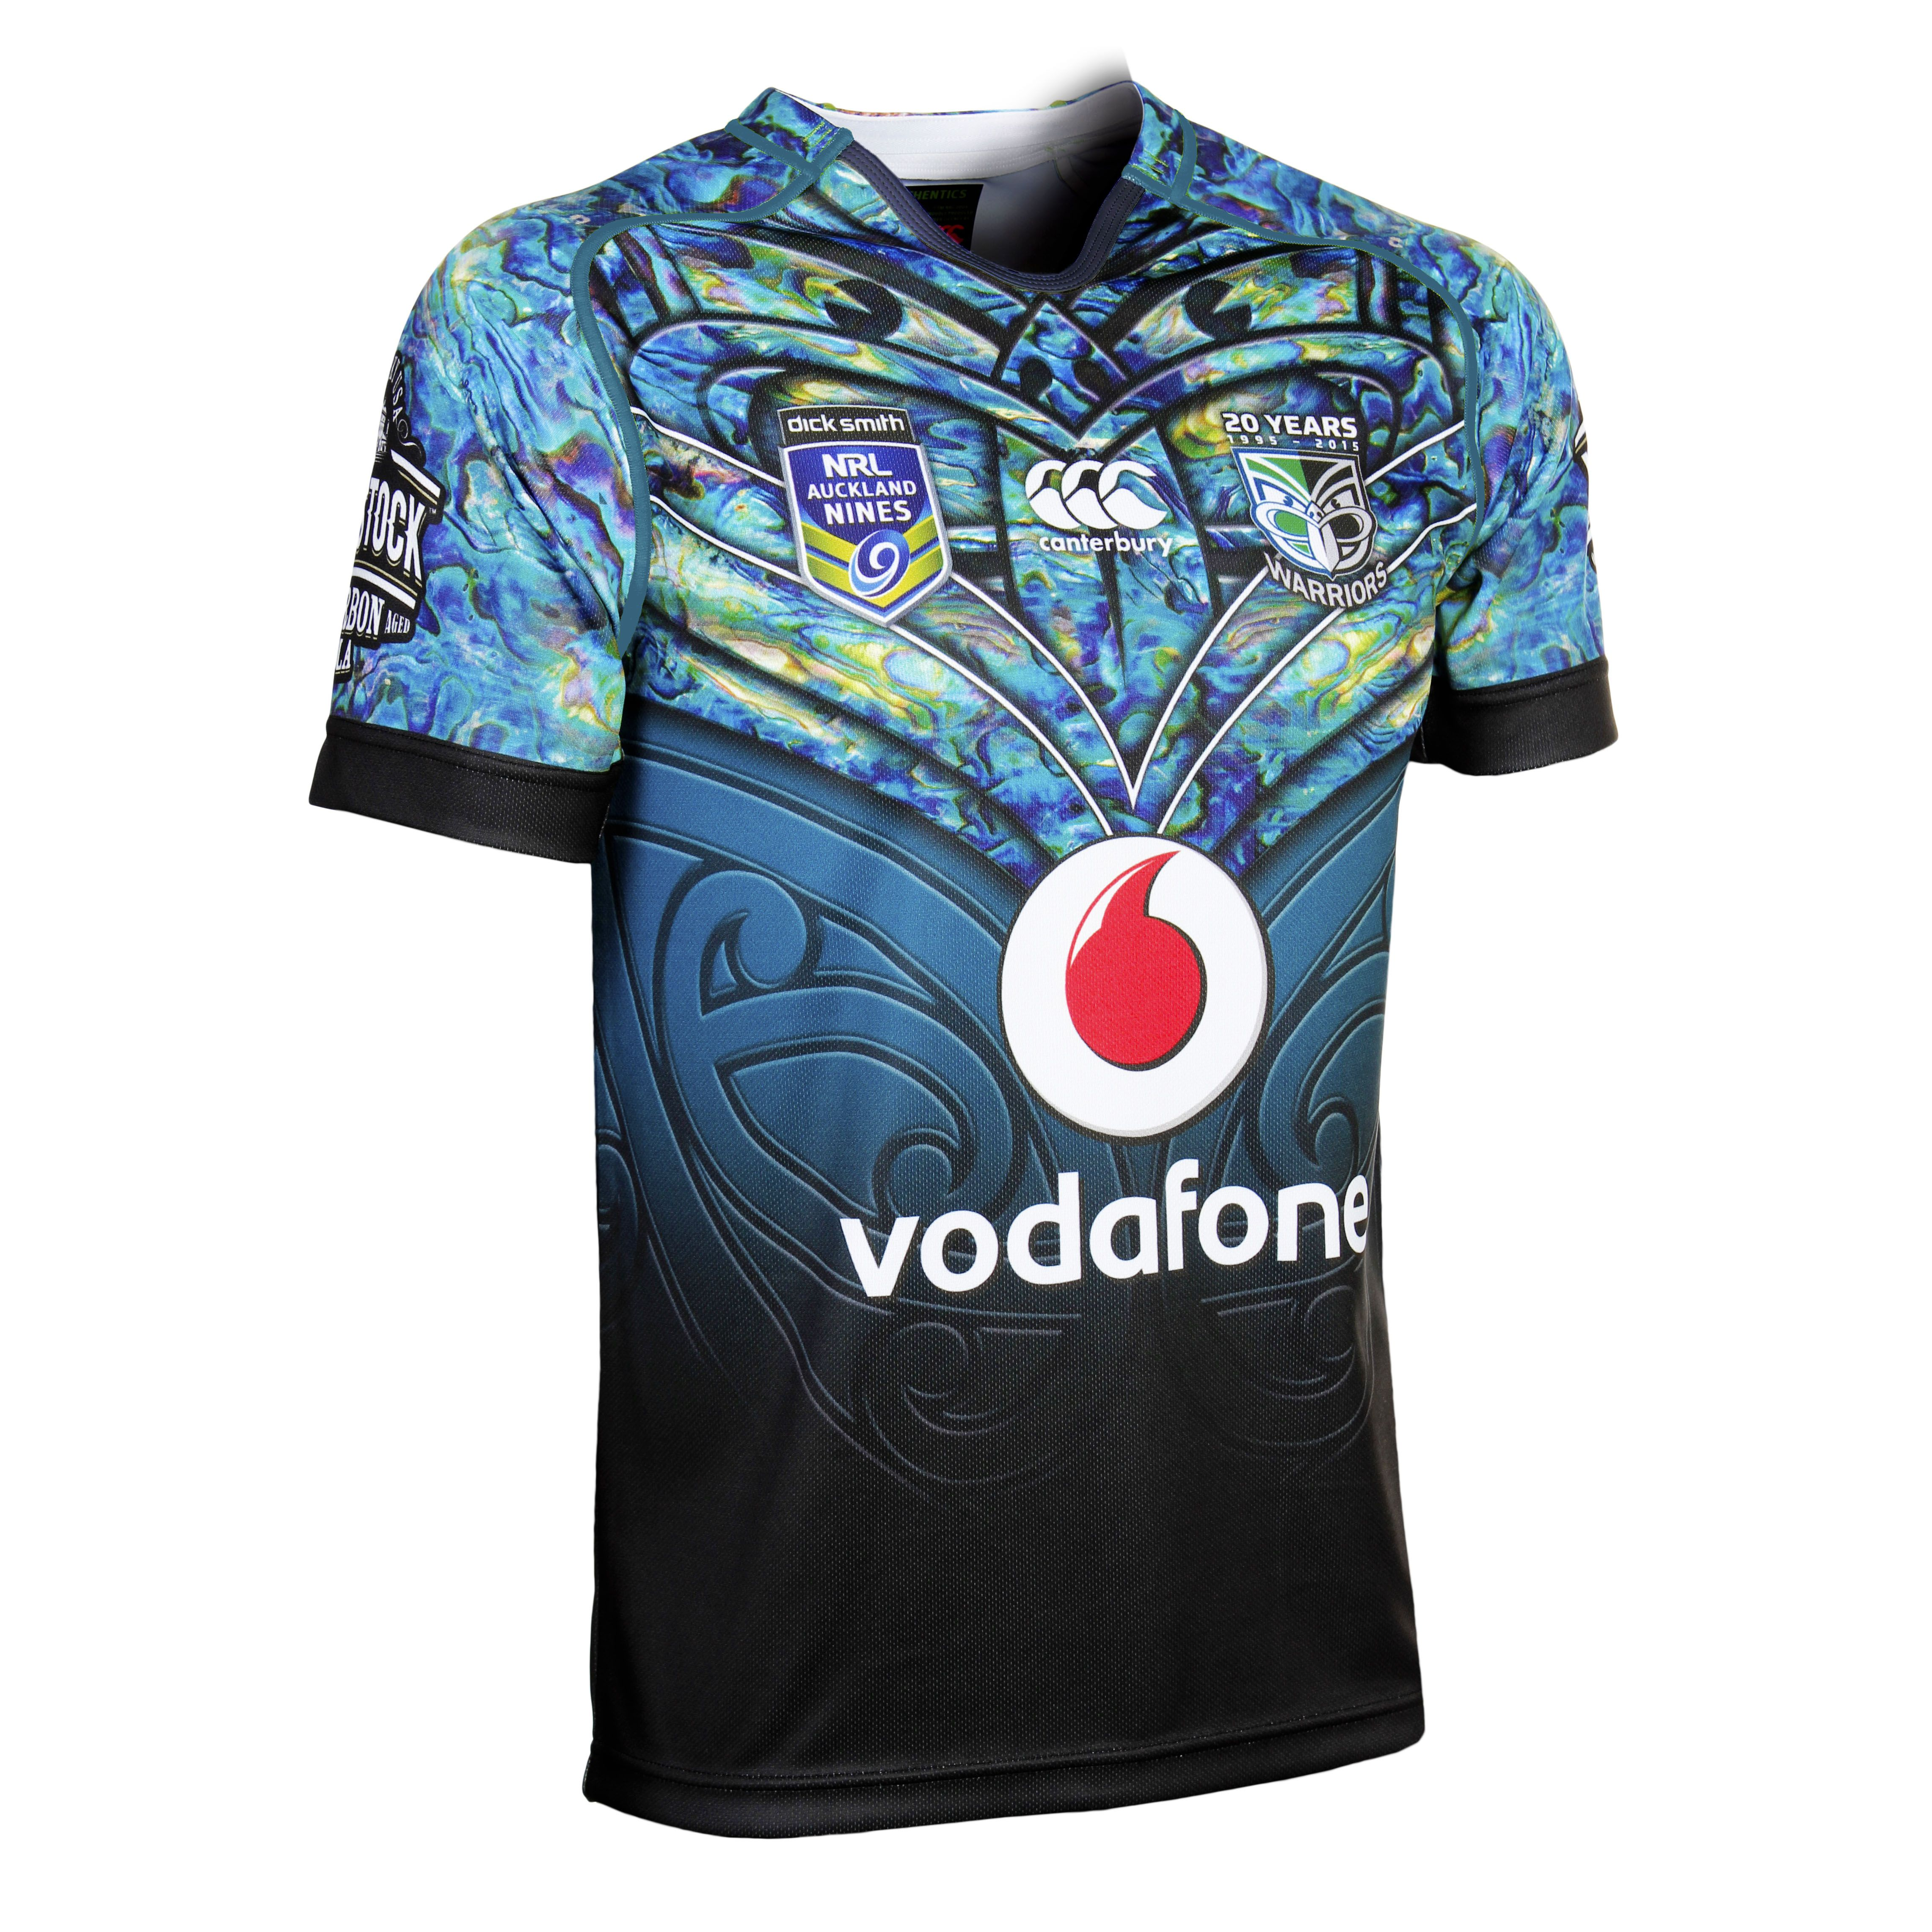 17c28af0742 Front view of the #Tangaroa jersey. The design pays homage to Tangaroa, the  #Maori god of the #ocean #Merchandise #WarriorsForever #NRL #AucklandNines  ...